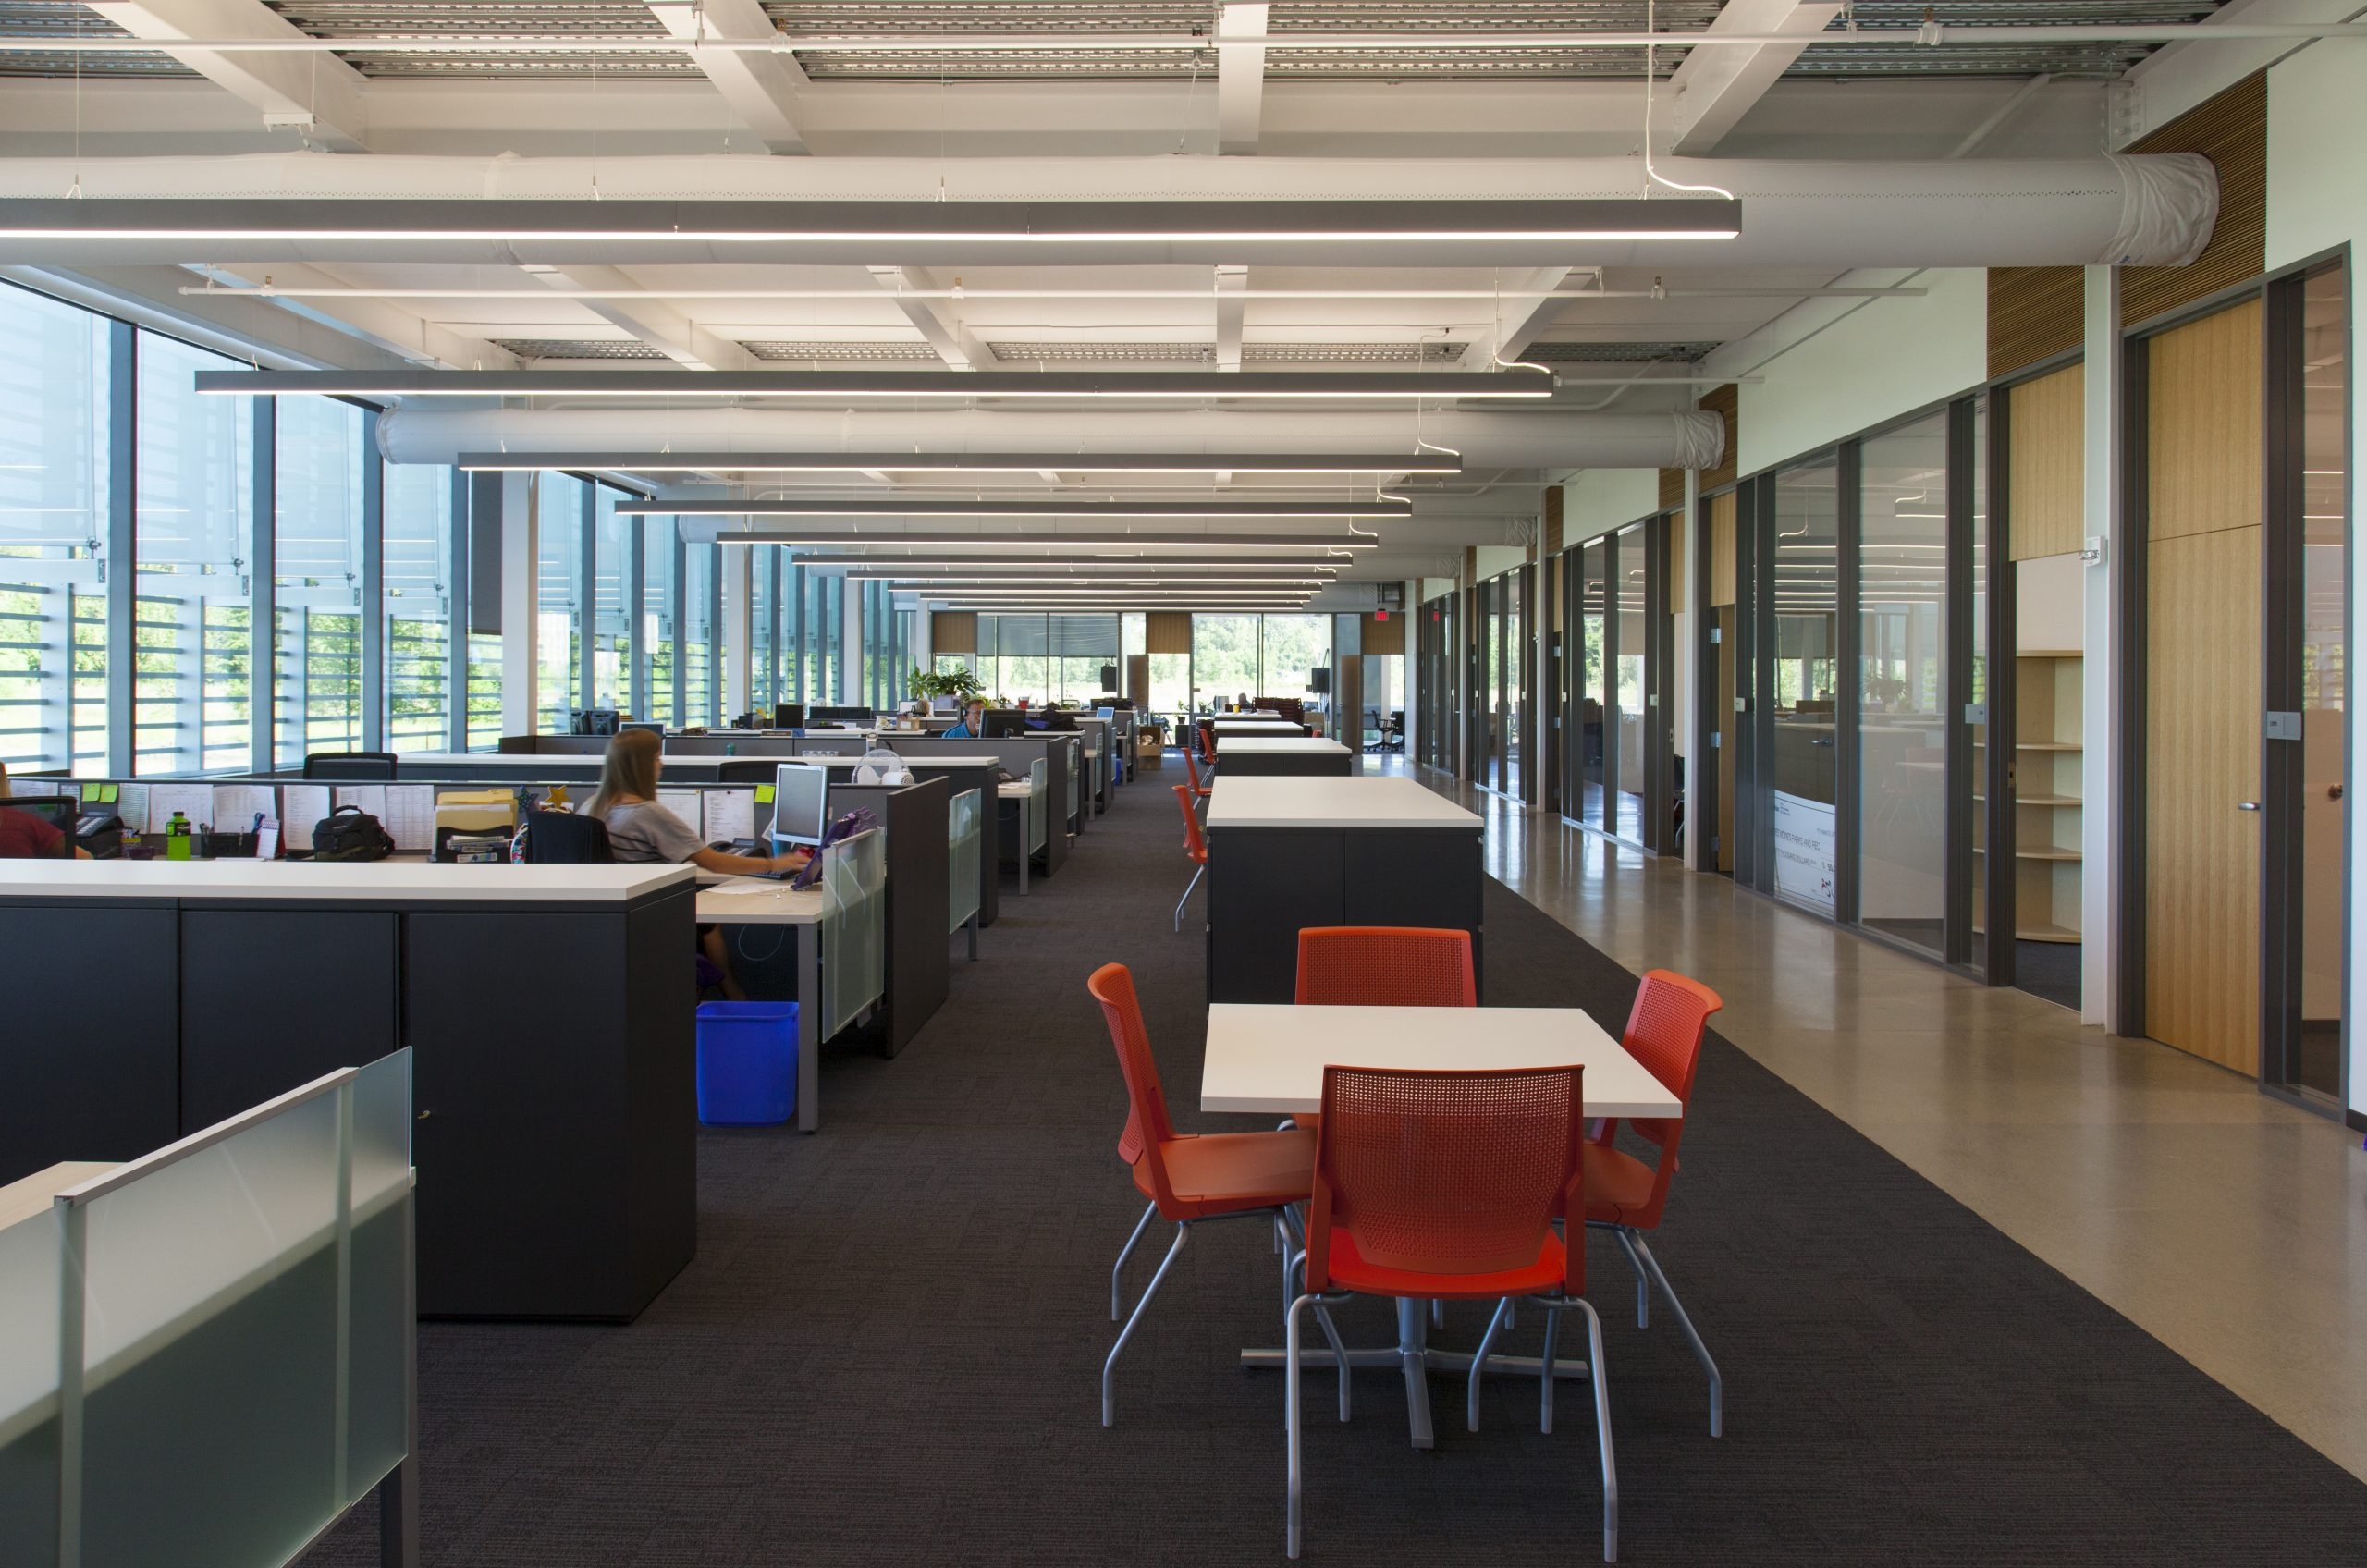 Office and cubical space for the Des Moines Municipal Service Center